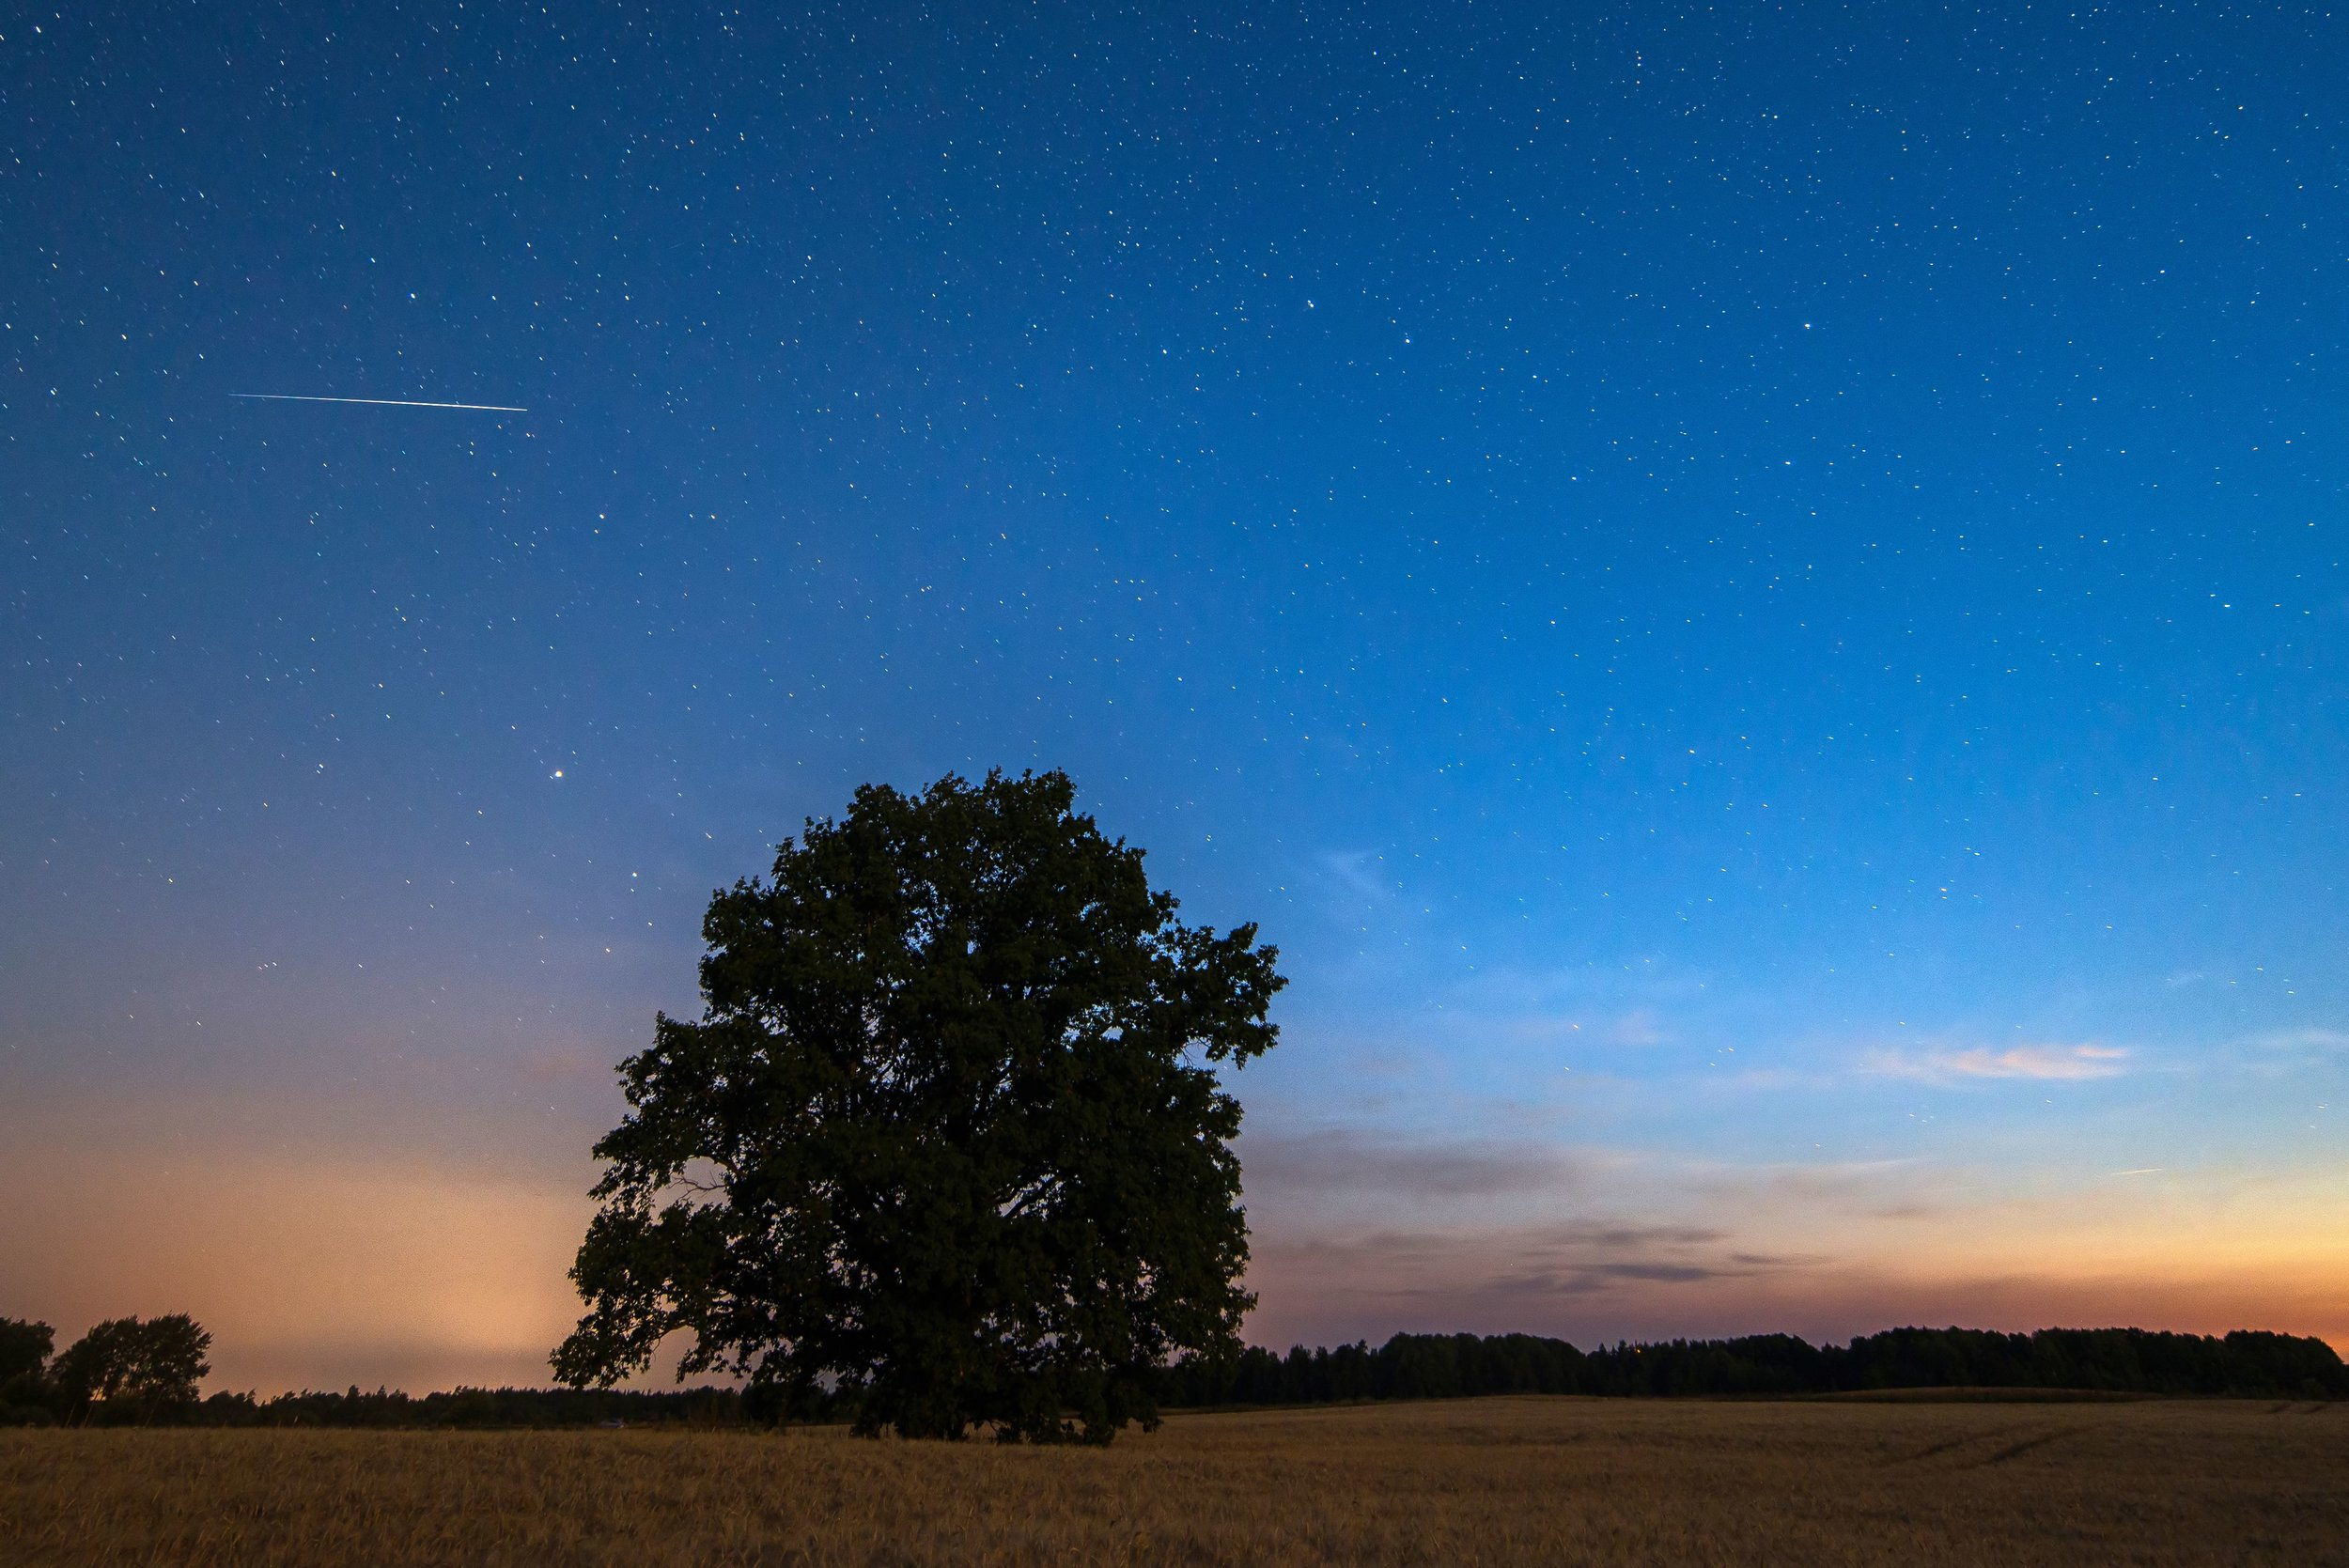 Iridium flare on a moonlit night in Võru County, Estonia; photo by Martin Mark via Wikimedia Commons.